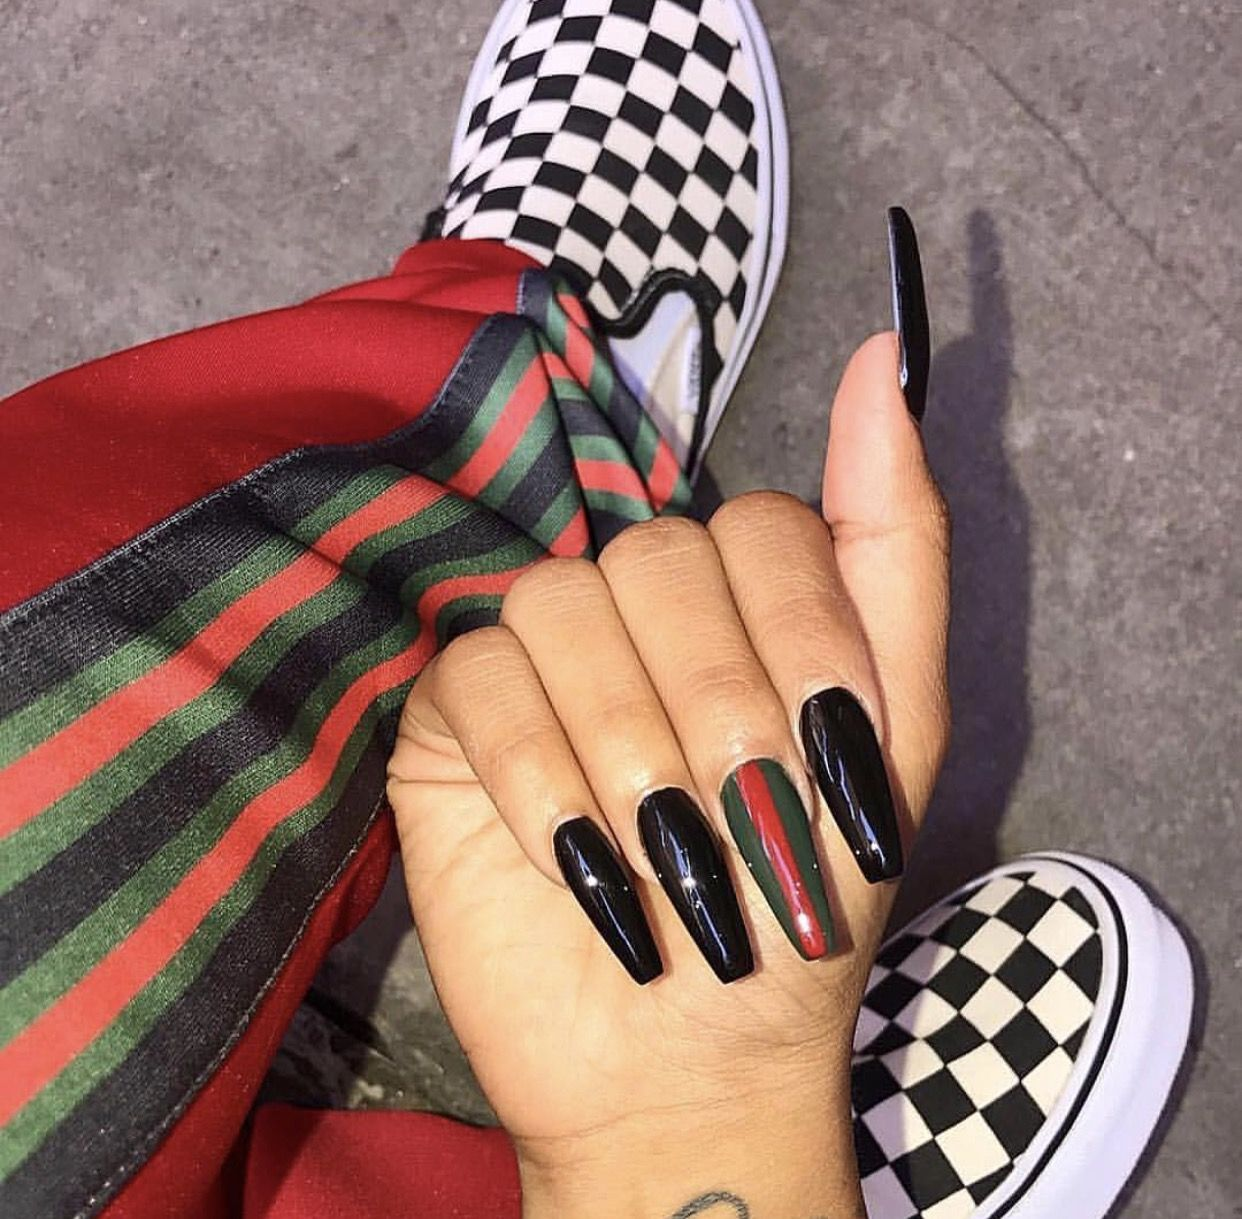 hey ladies, follow the queen for more poppin\' pins @kjvougee ...